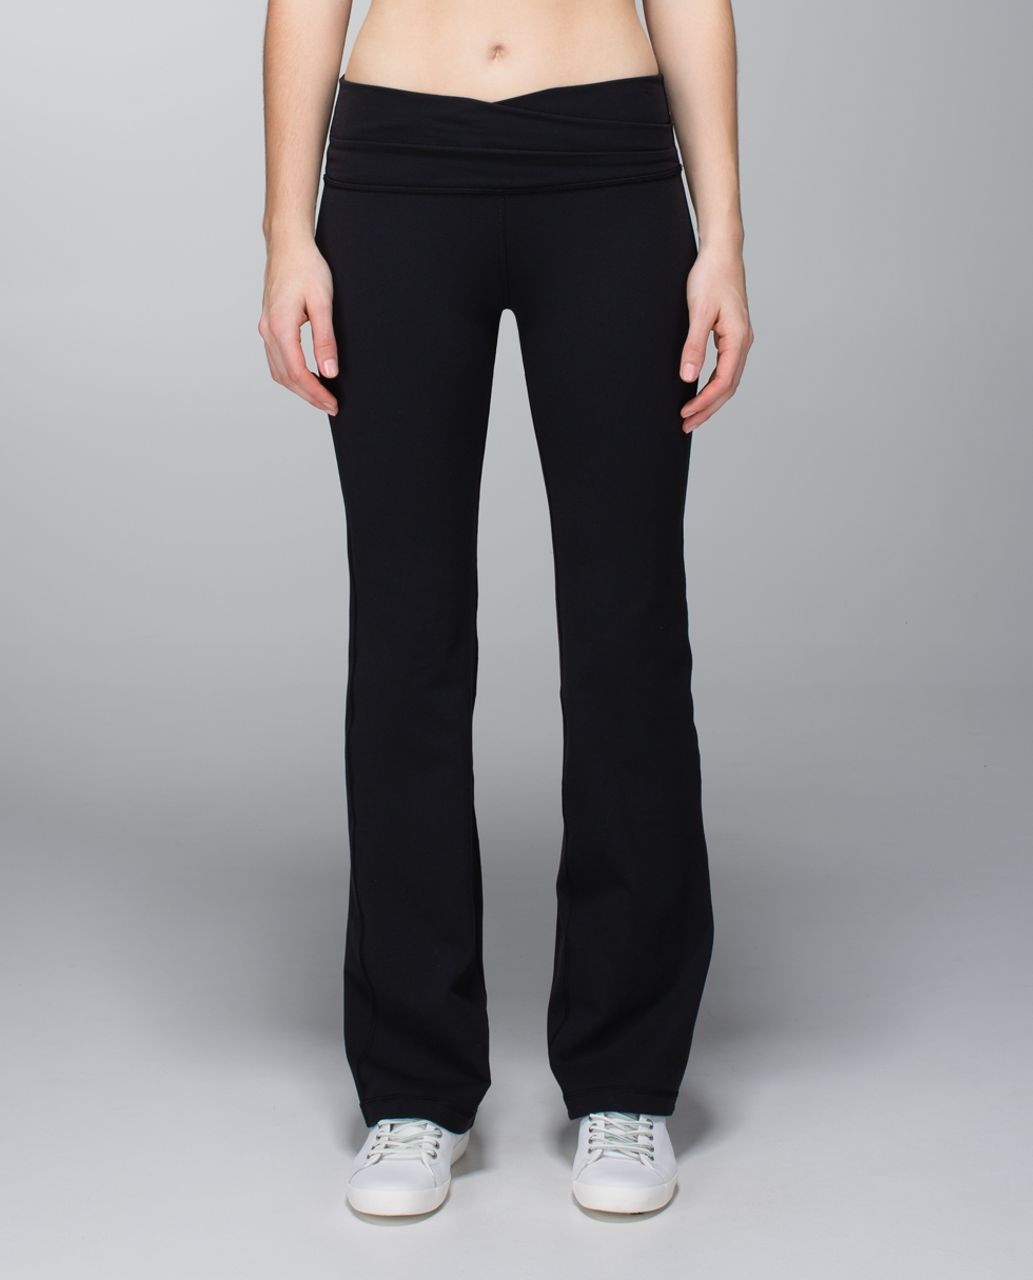 0fb0a8ffe042b Lululemon Astro Pant (Regular) *Full-On Luon - Black - lulu fanatics